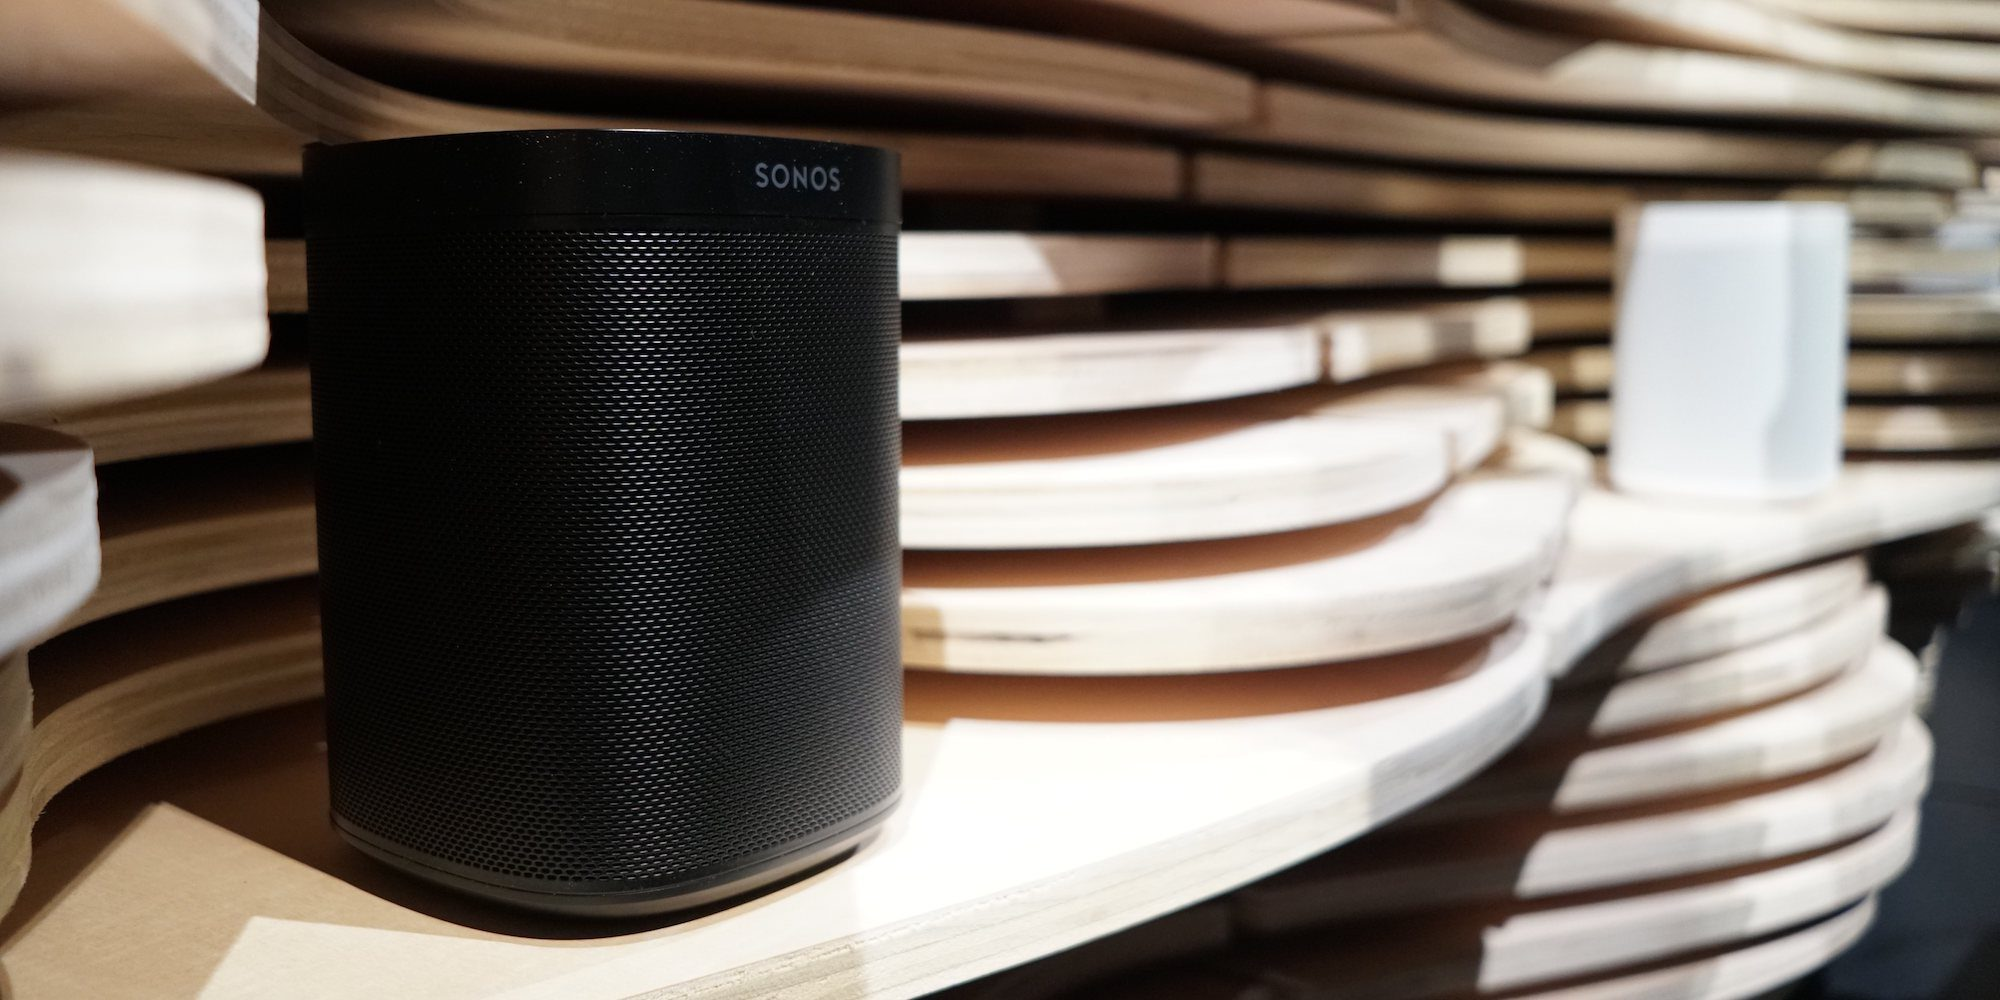 Sonos can now be the default speaker for Nest Hub, other Assistant devices - 9to5Google